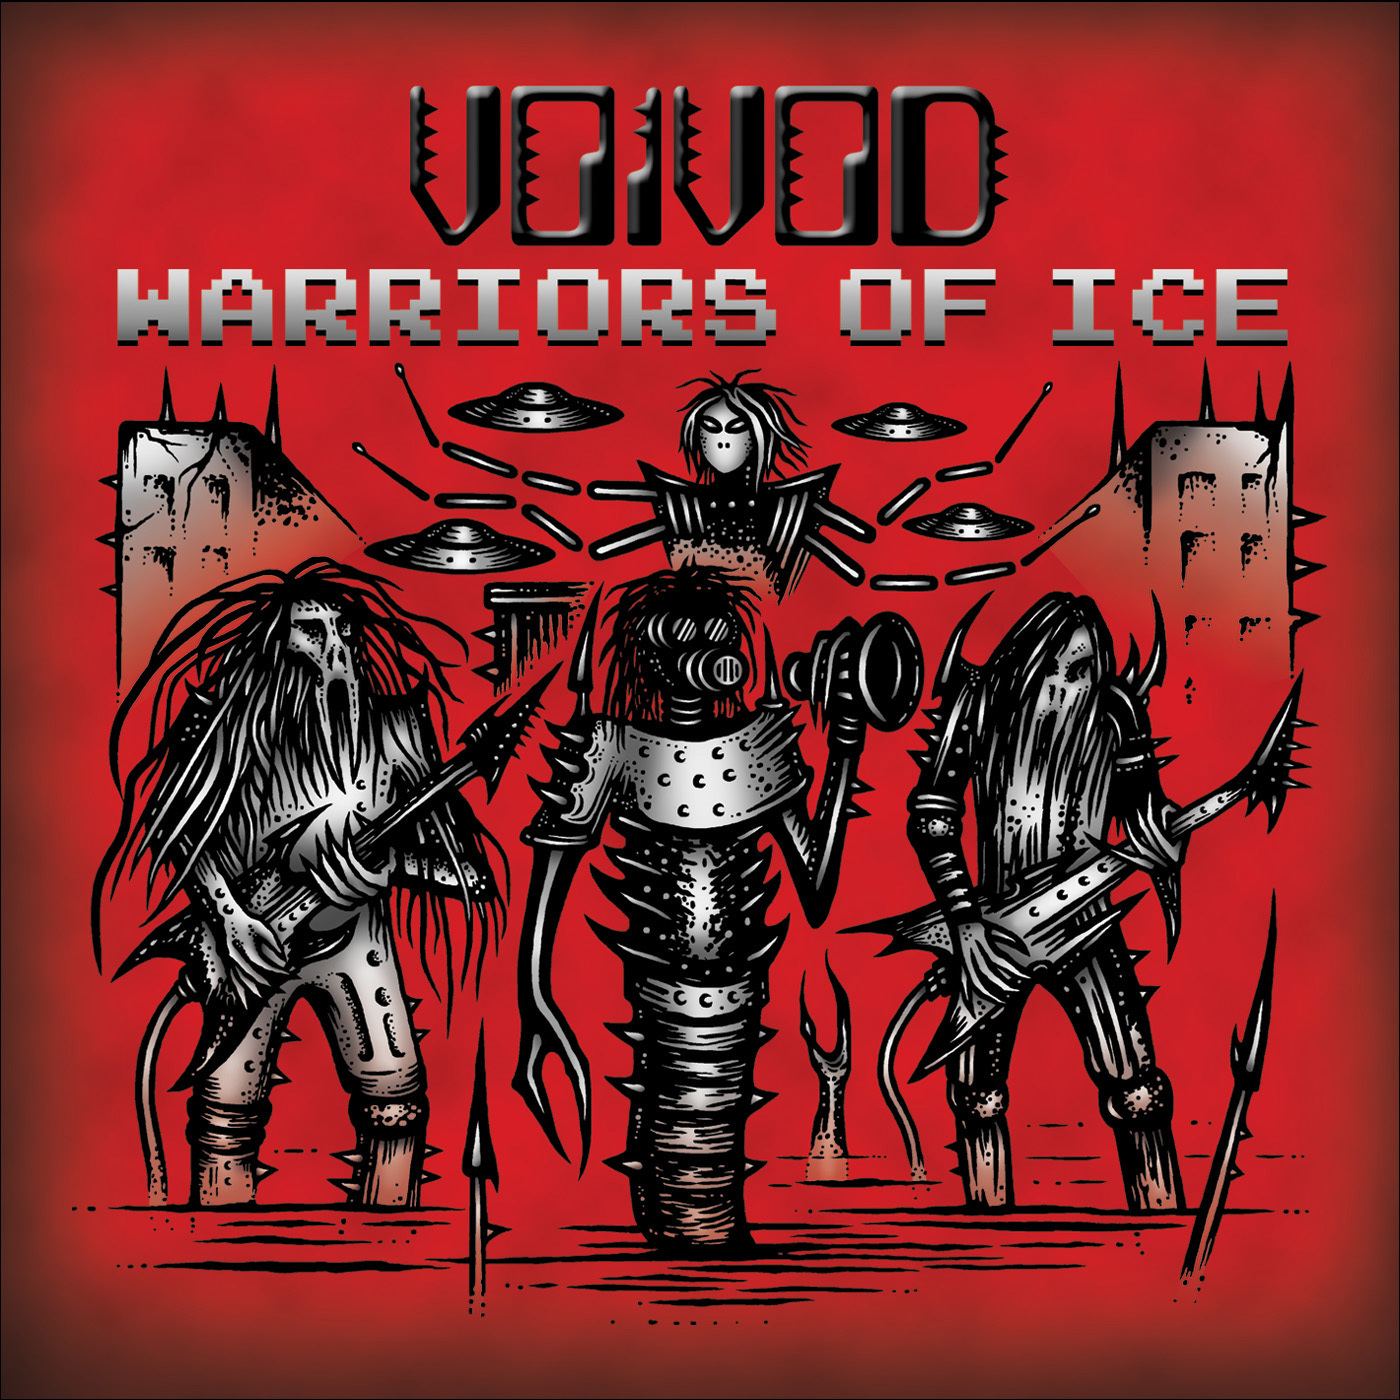 Voivod - Warriors of Ice